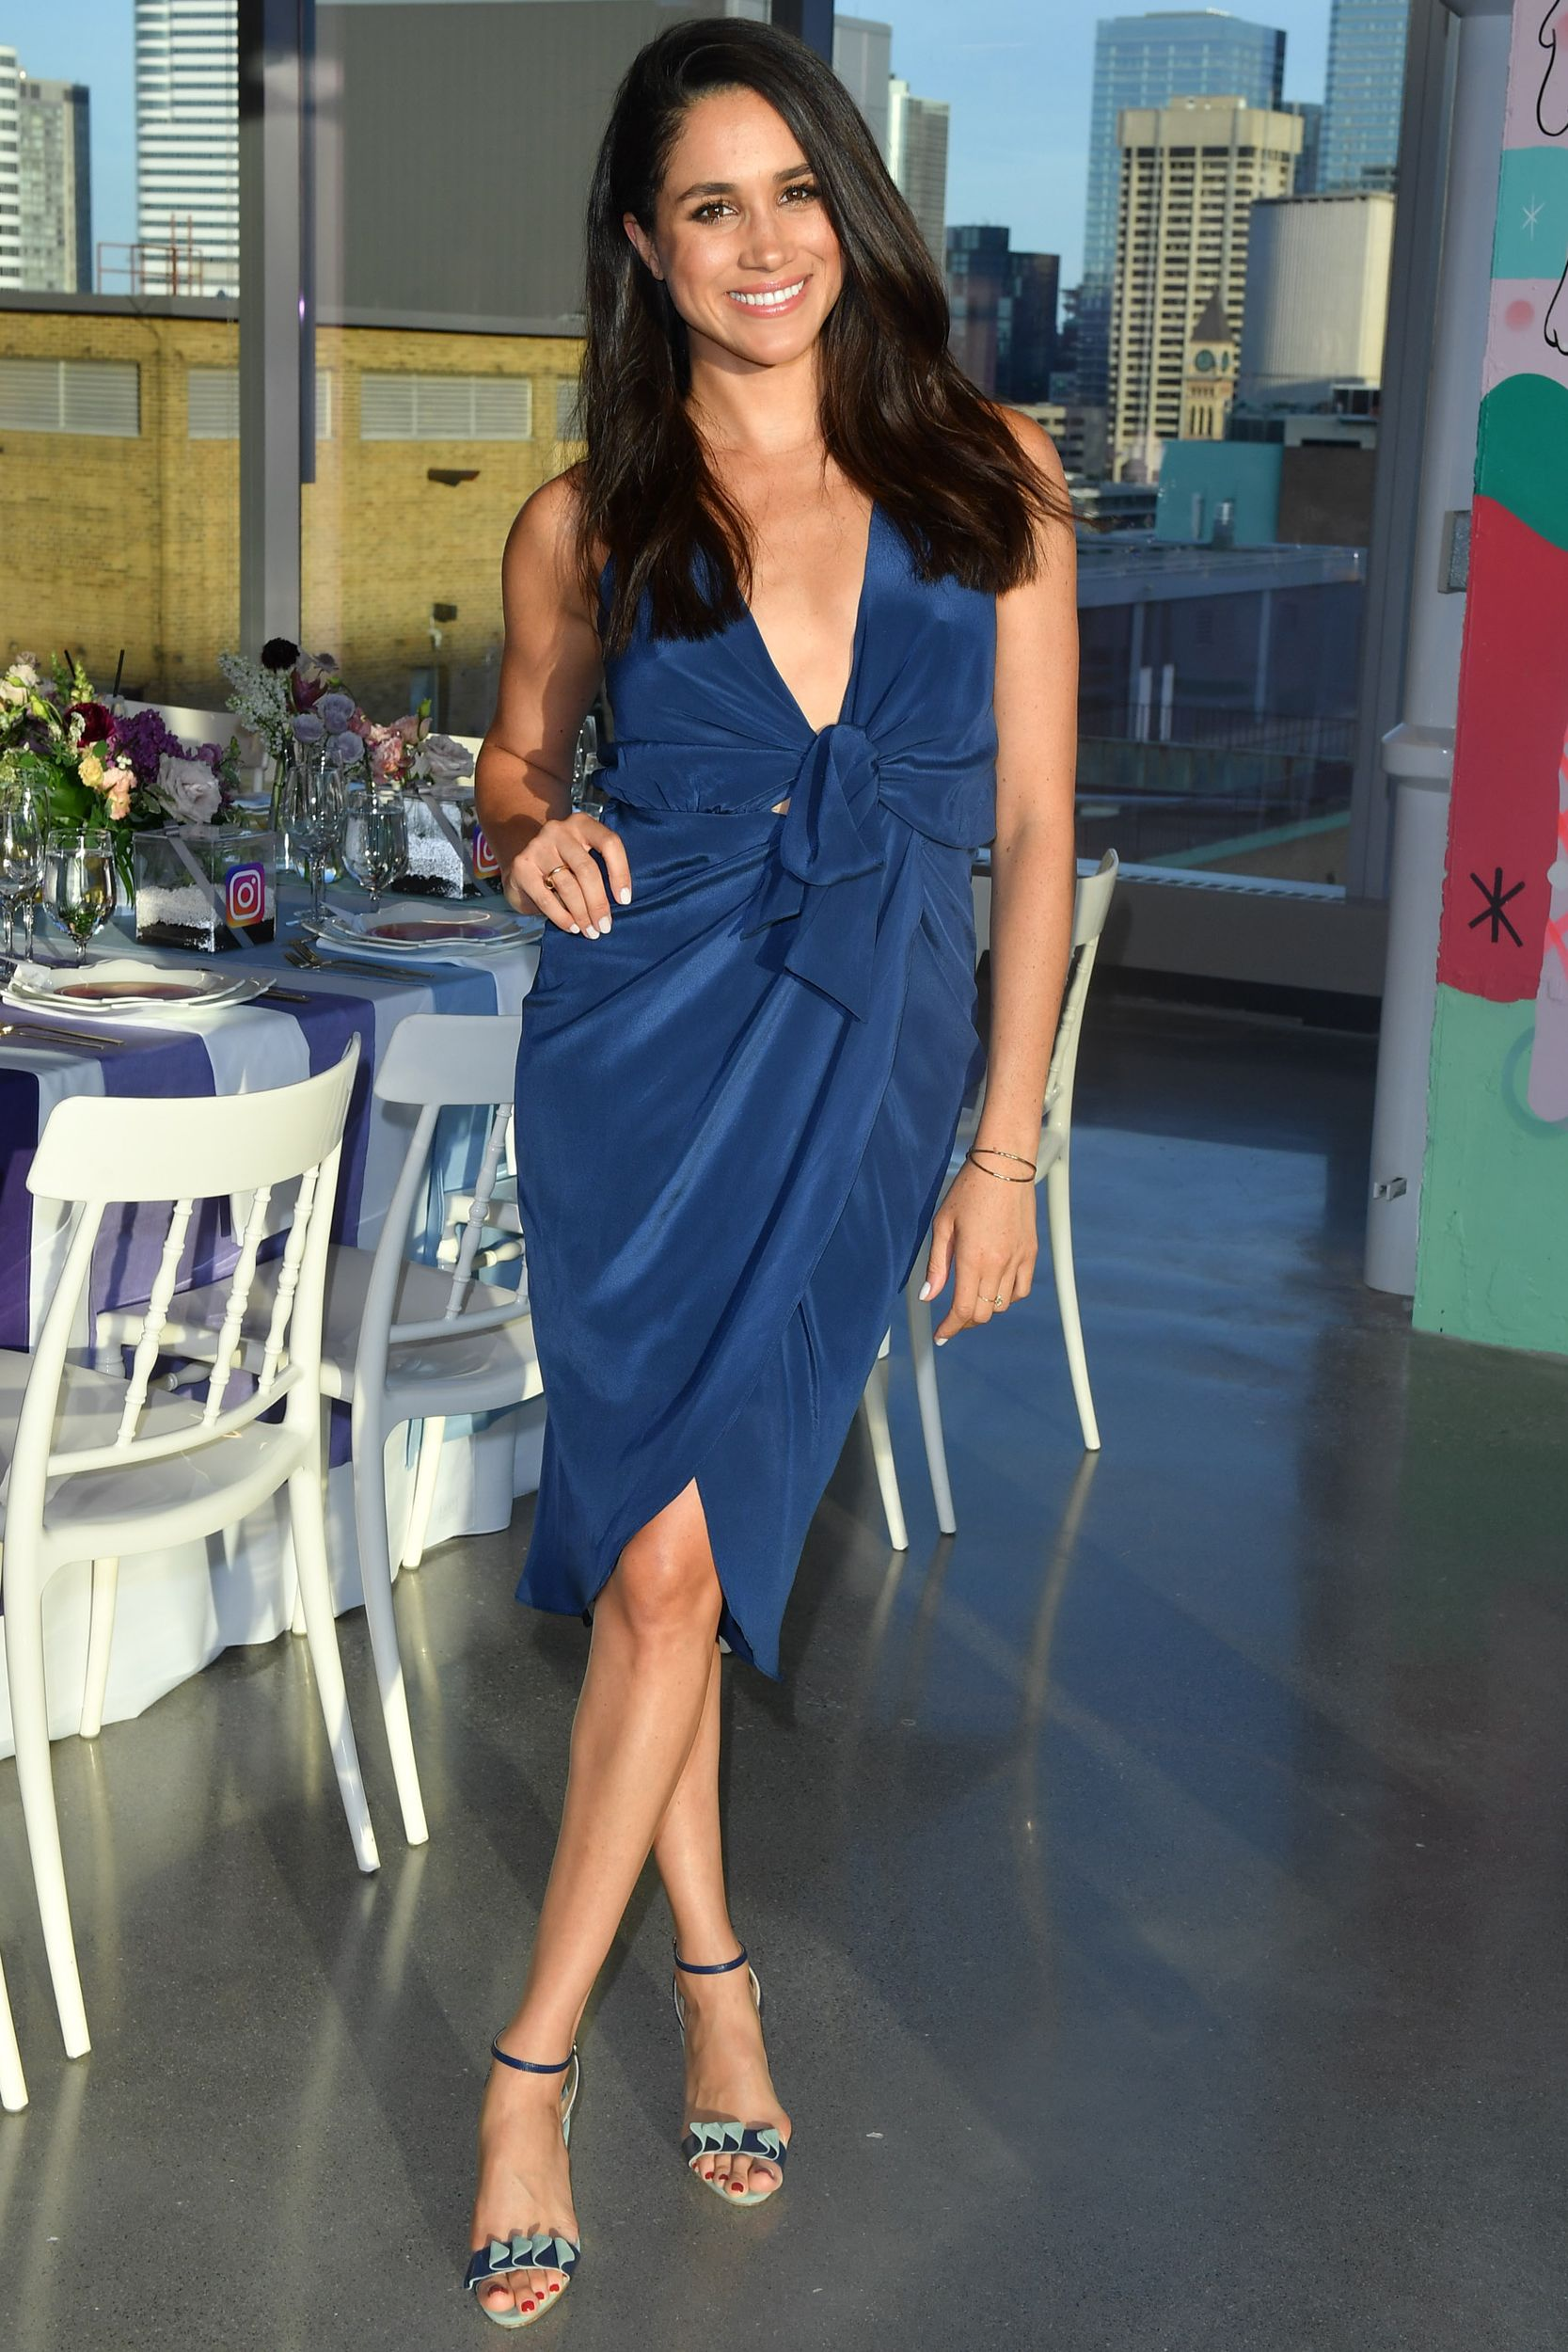 30 of meghan markle s best looks before she was a royal meghan markle fashion meghan markle fashion